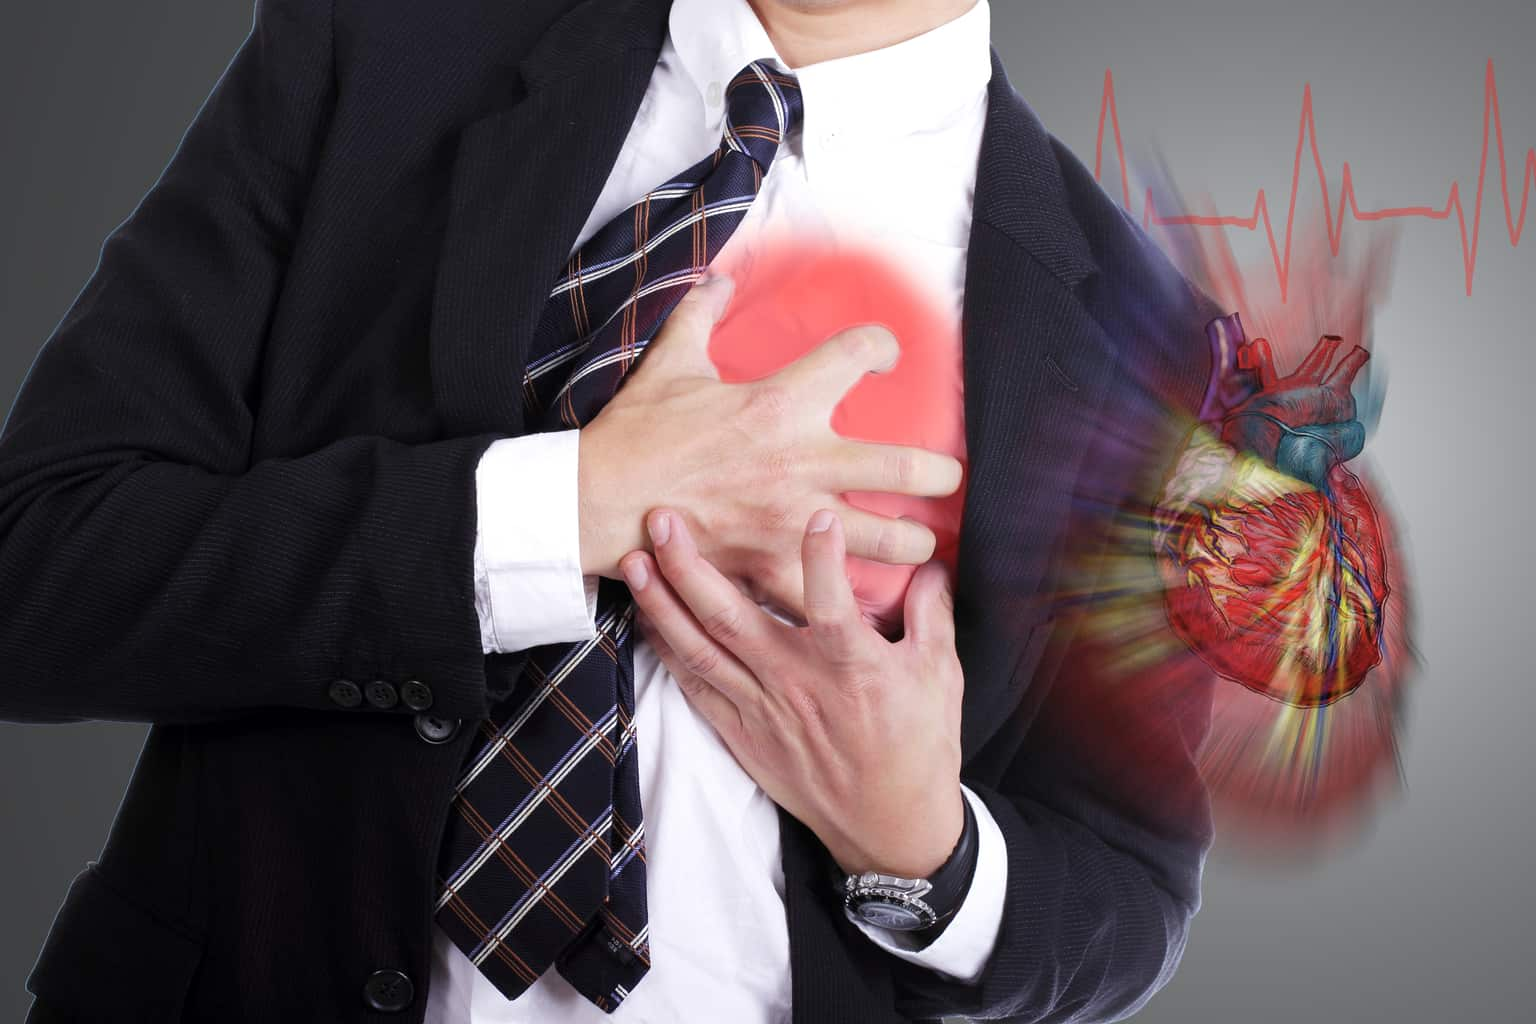 A month before a heart attack, you will get these 5 warnings